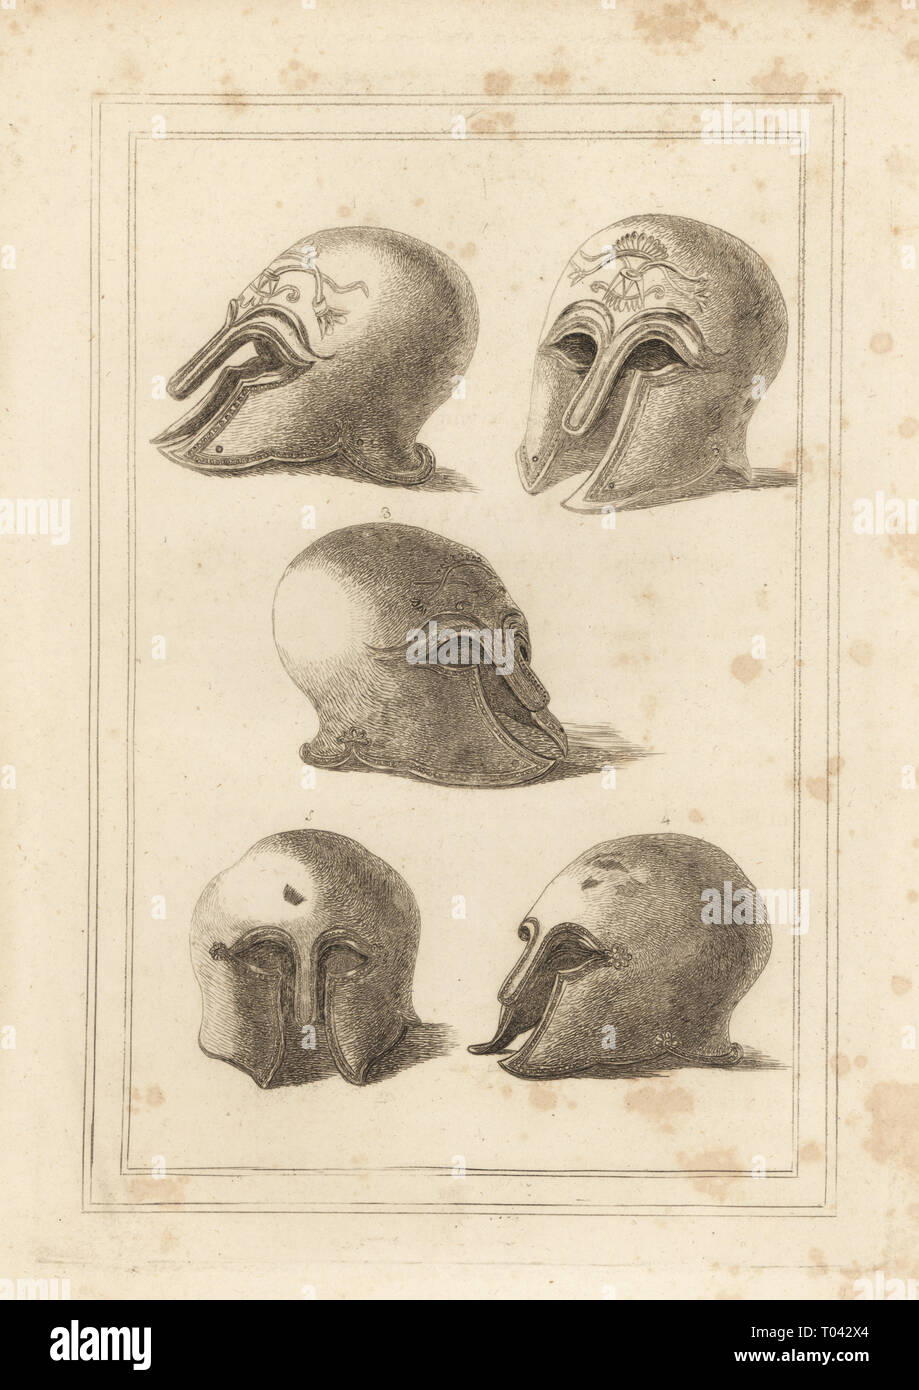 Ancient Greek brass helmet in the form of an owl, Minerva's favourite bird, 1,2,3 and another helmet from Rome 4,5. Copperplate engraving from Francis Grose's Military Antiquities respecting a History of the English Army, Stockdale, London, 1812. - Stock Image